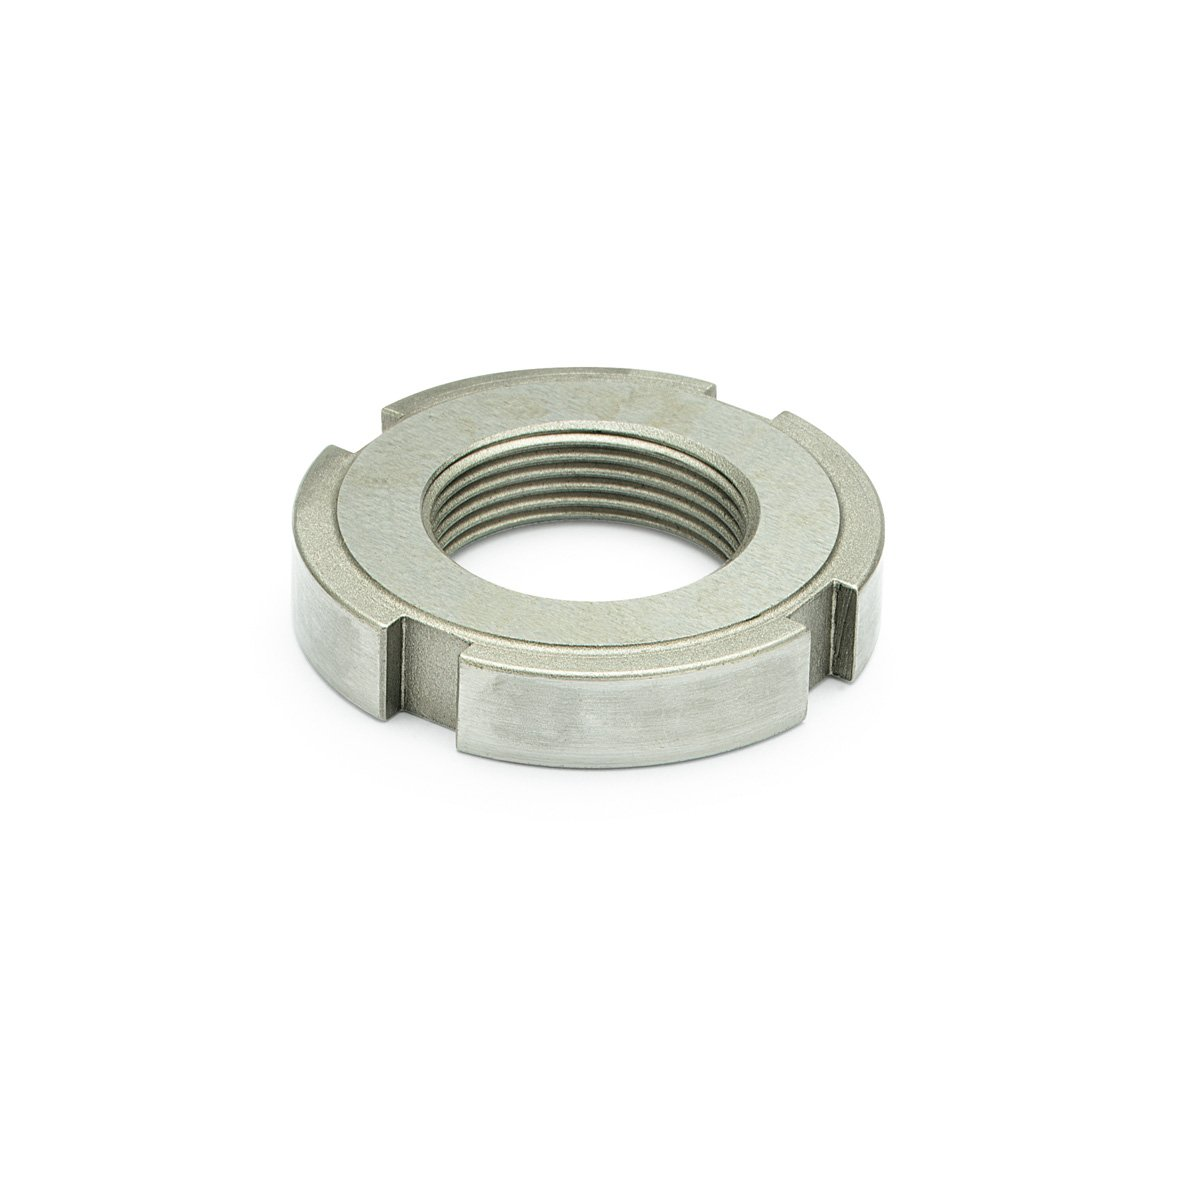 J.W. Winco 1804-M20X1.5-WNI DIN1804-NI Slotted Spanner Nut, M20 x 1.5 mm, Stainless Steel by JW Winco